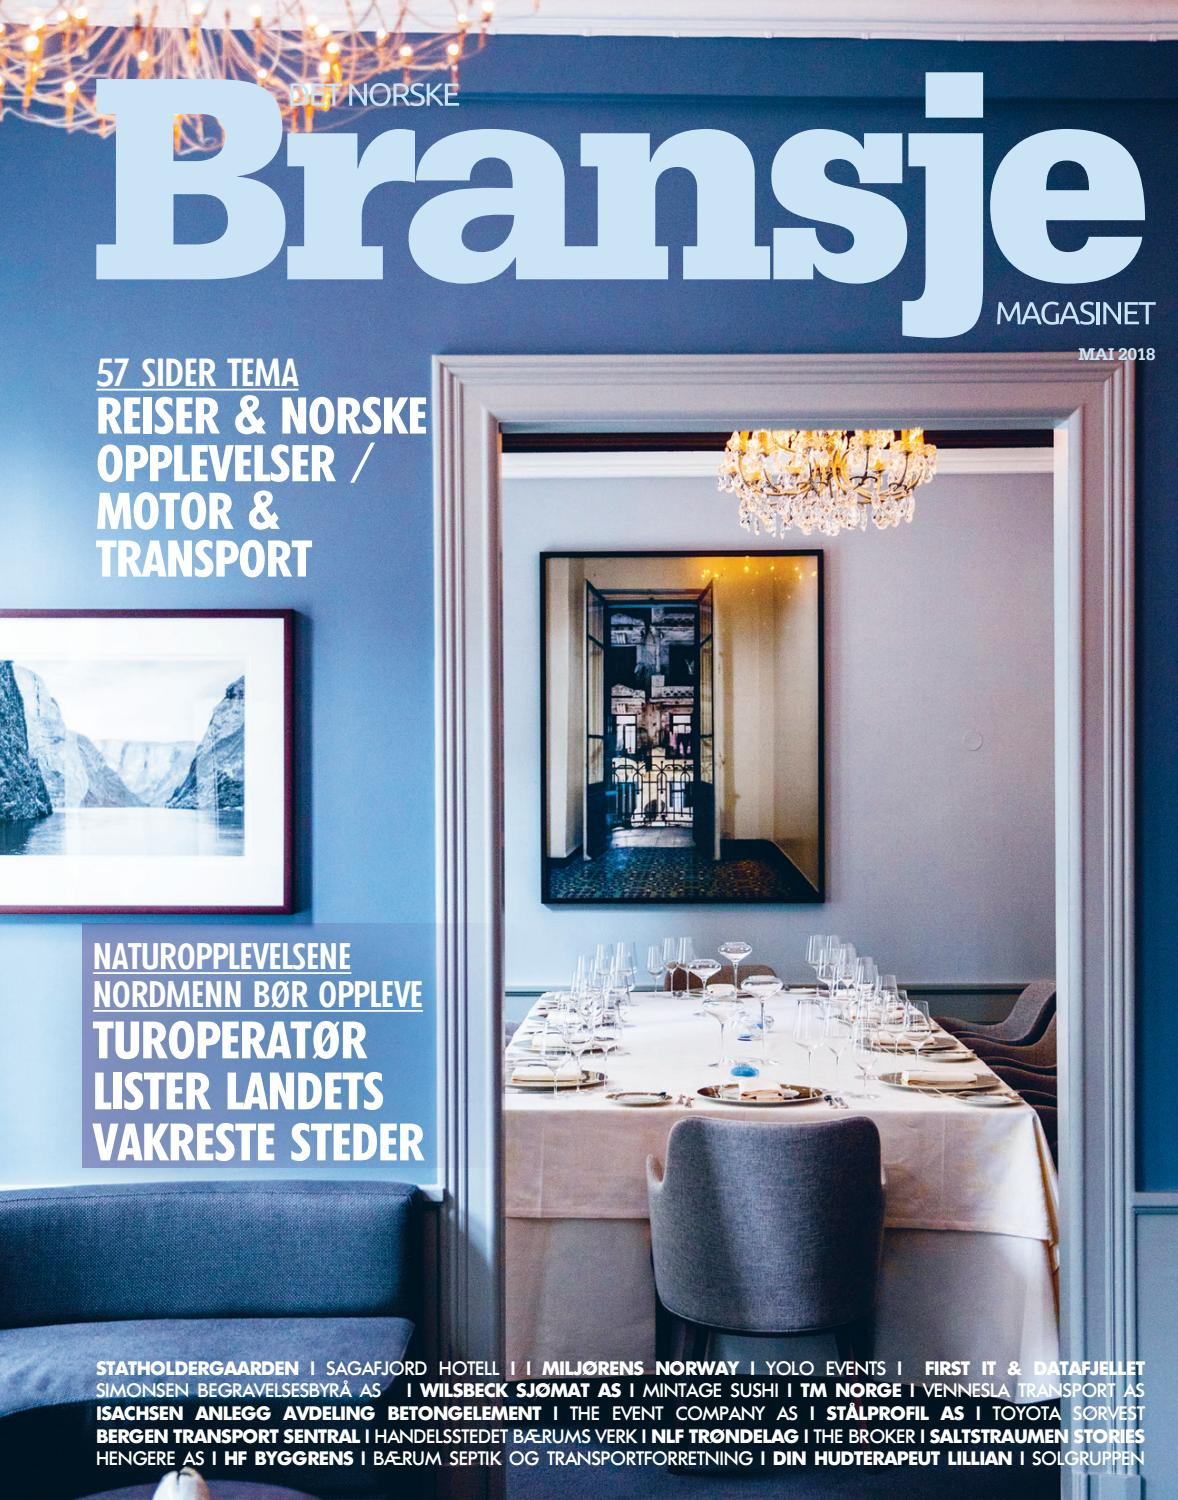 982d4fb7 Norske bransjemagasinet mai 2018 by R&D Forlag AS - issuu